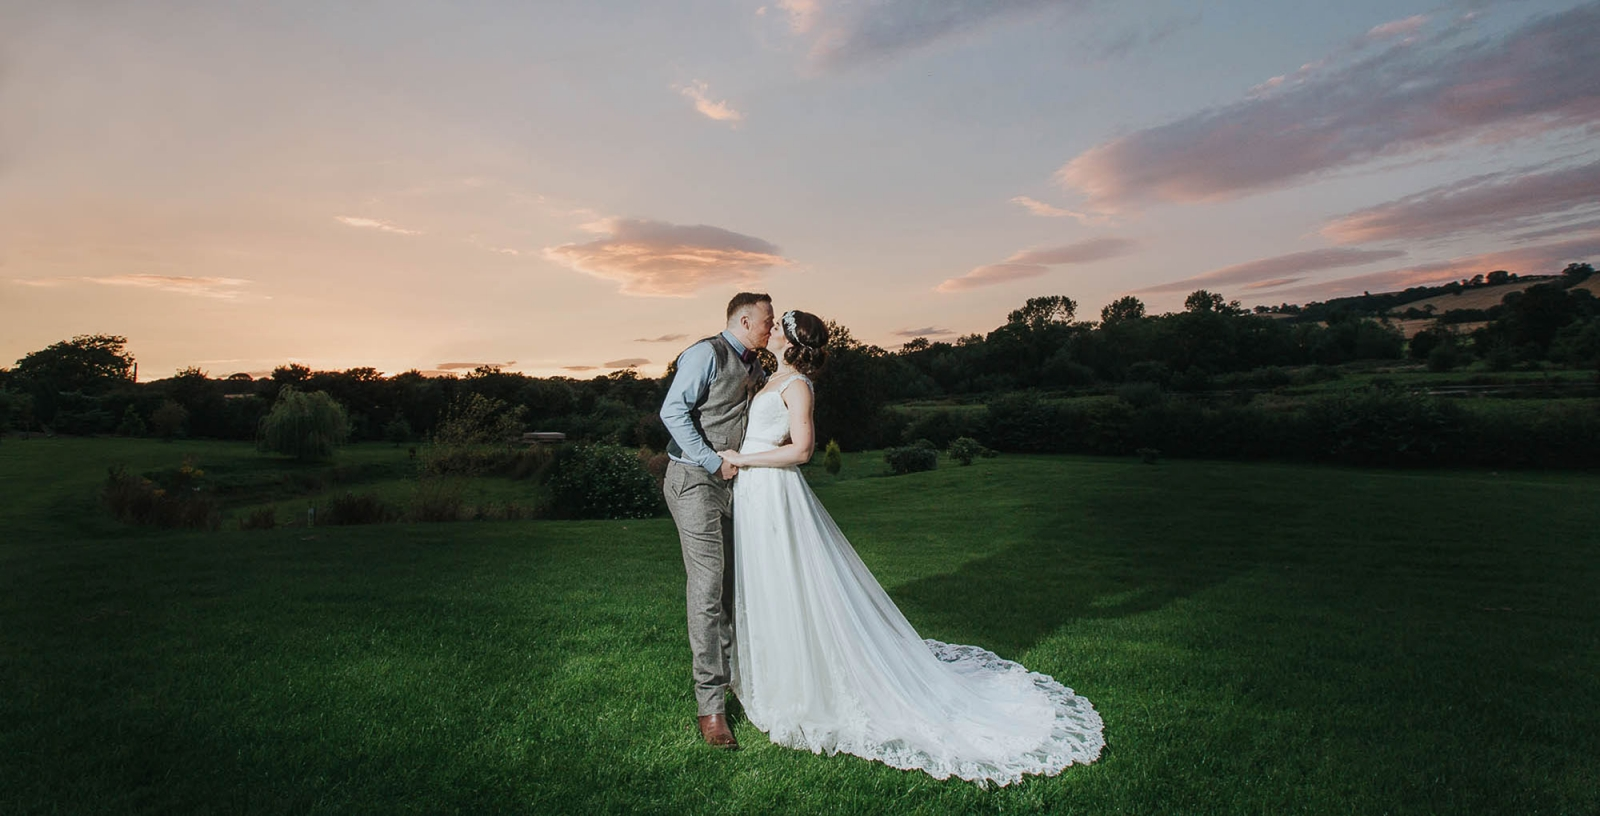 yorkshire wedding barn photographer | bride and groom in the sunset